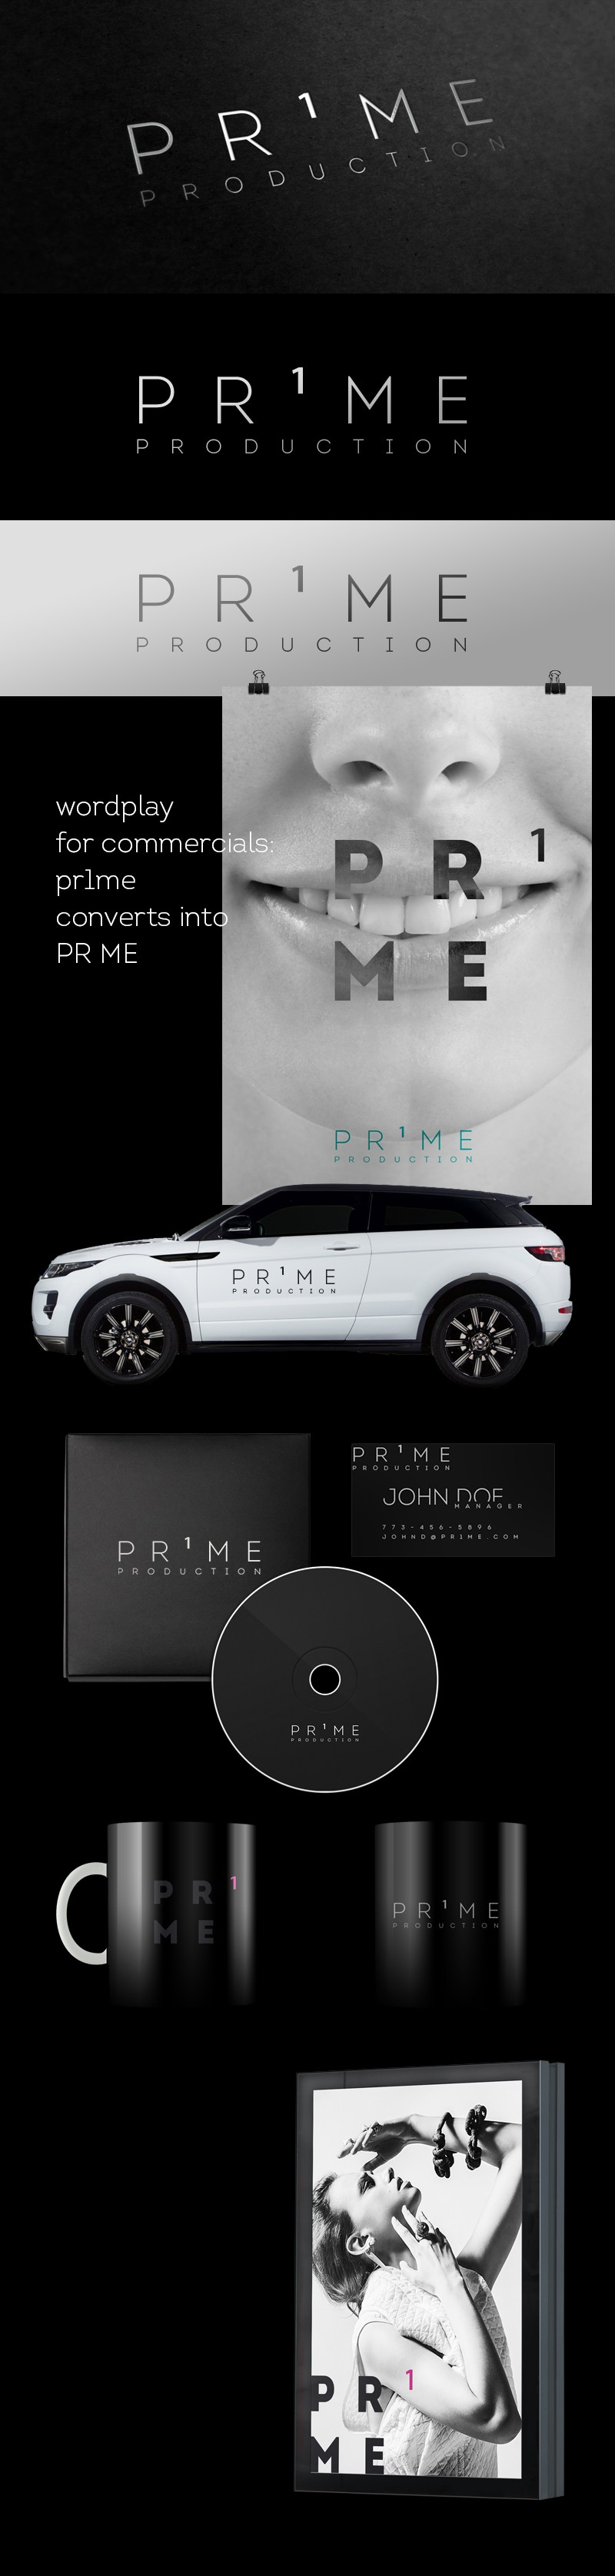 Creative Media Agency in Zurich: Prime Production- Logo and Stationary